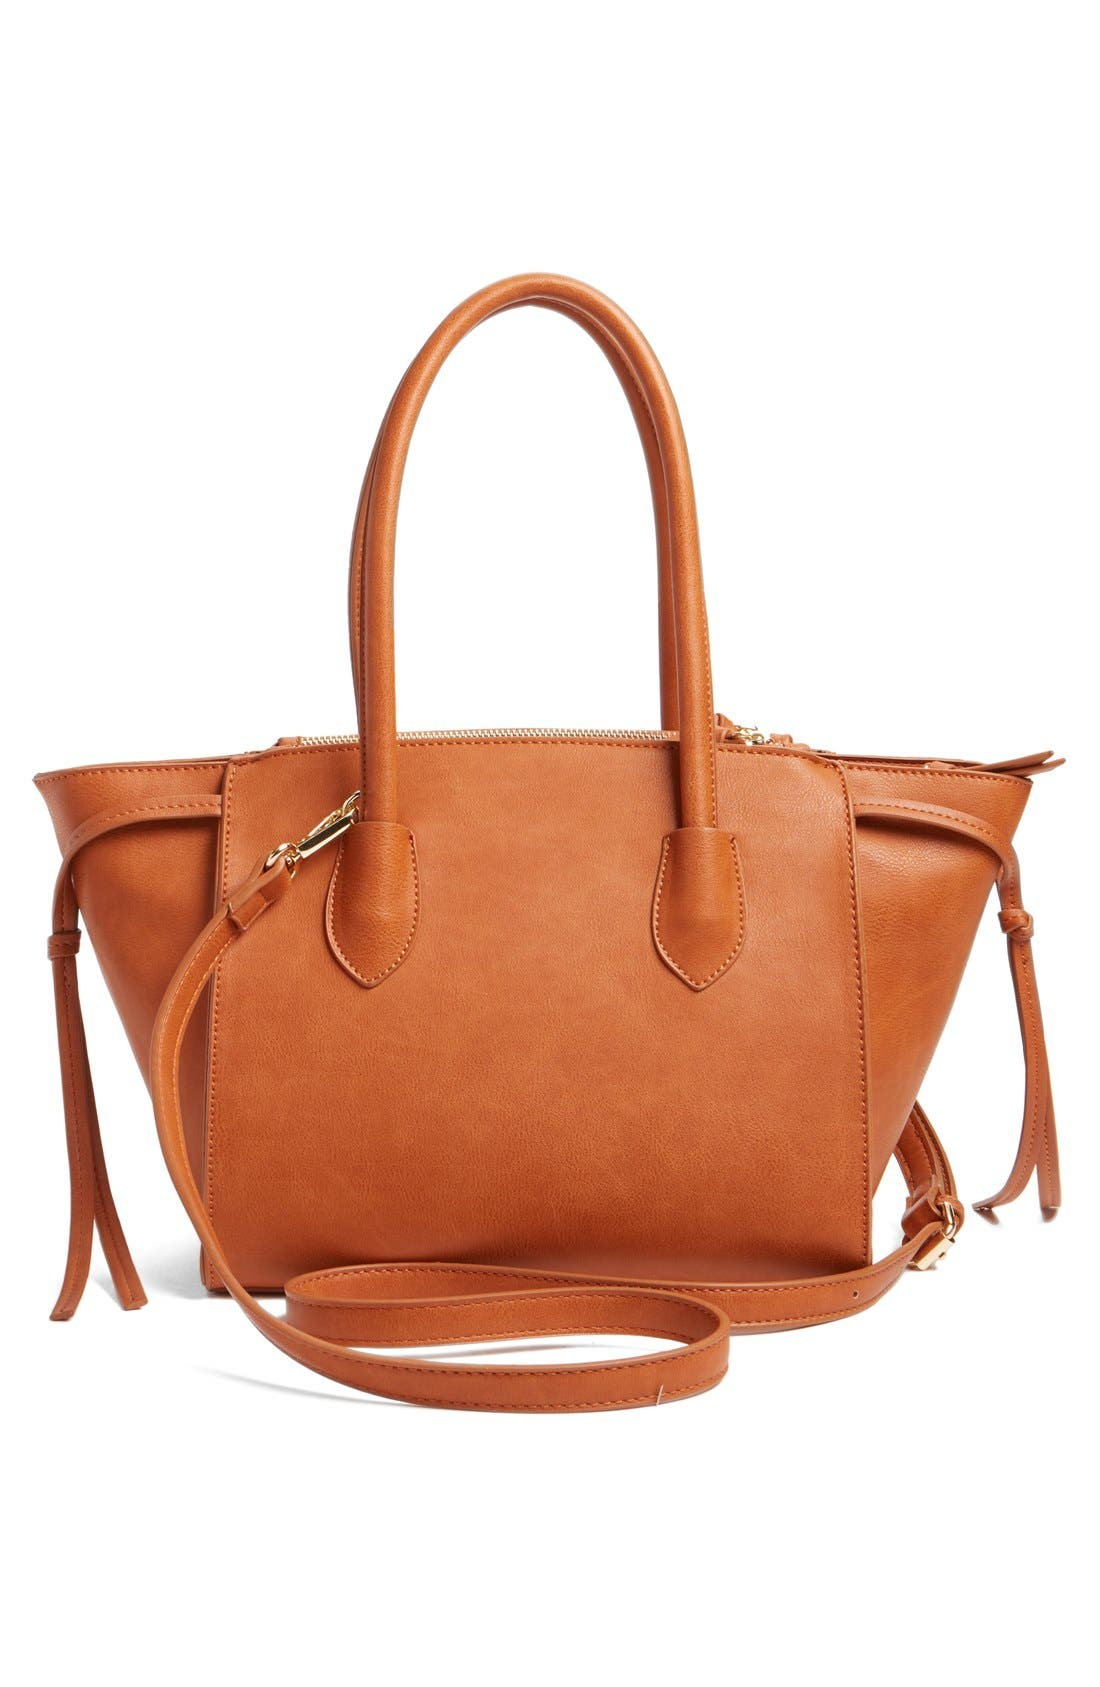 'Farris' Faux Leather Winged Satchel,                             Alternate thumbnail 3, color,                             Cognac